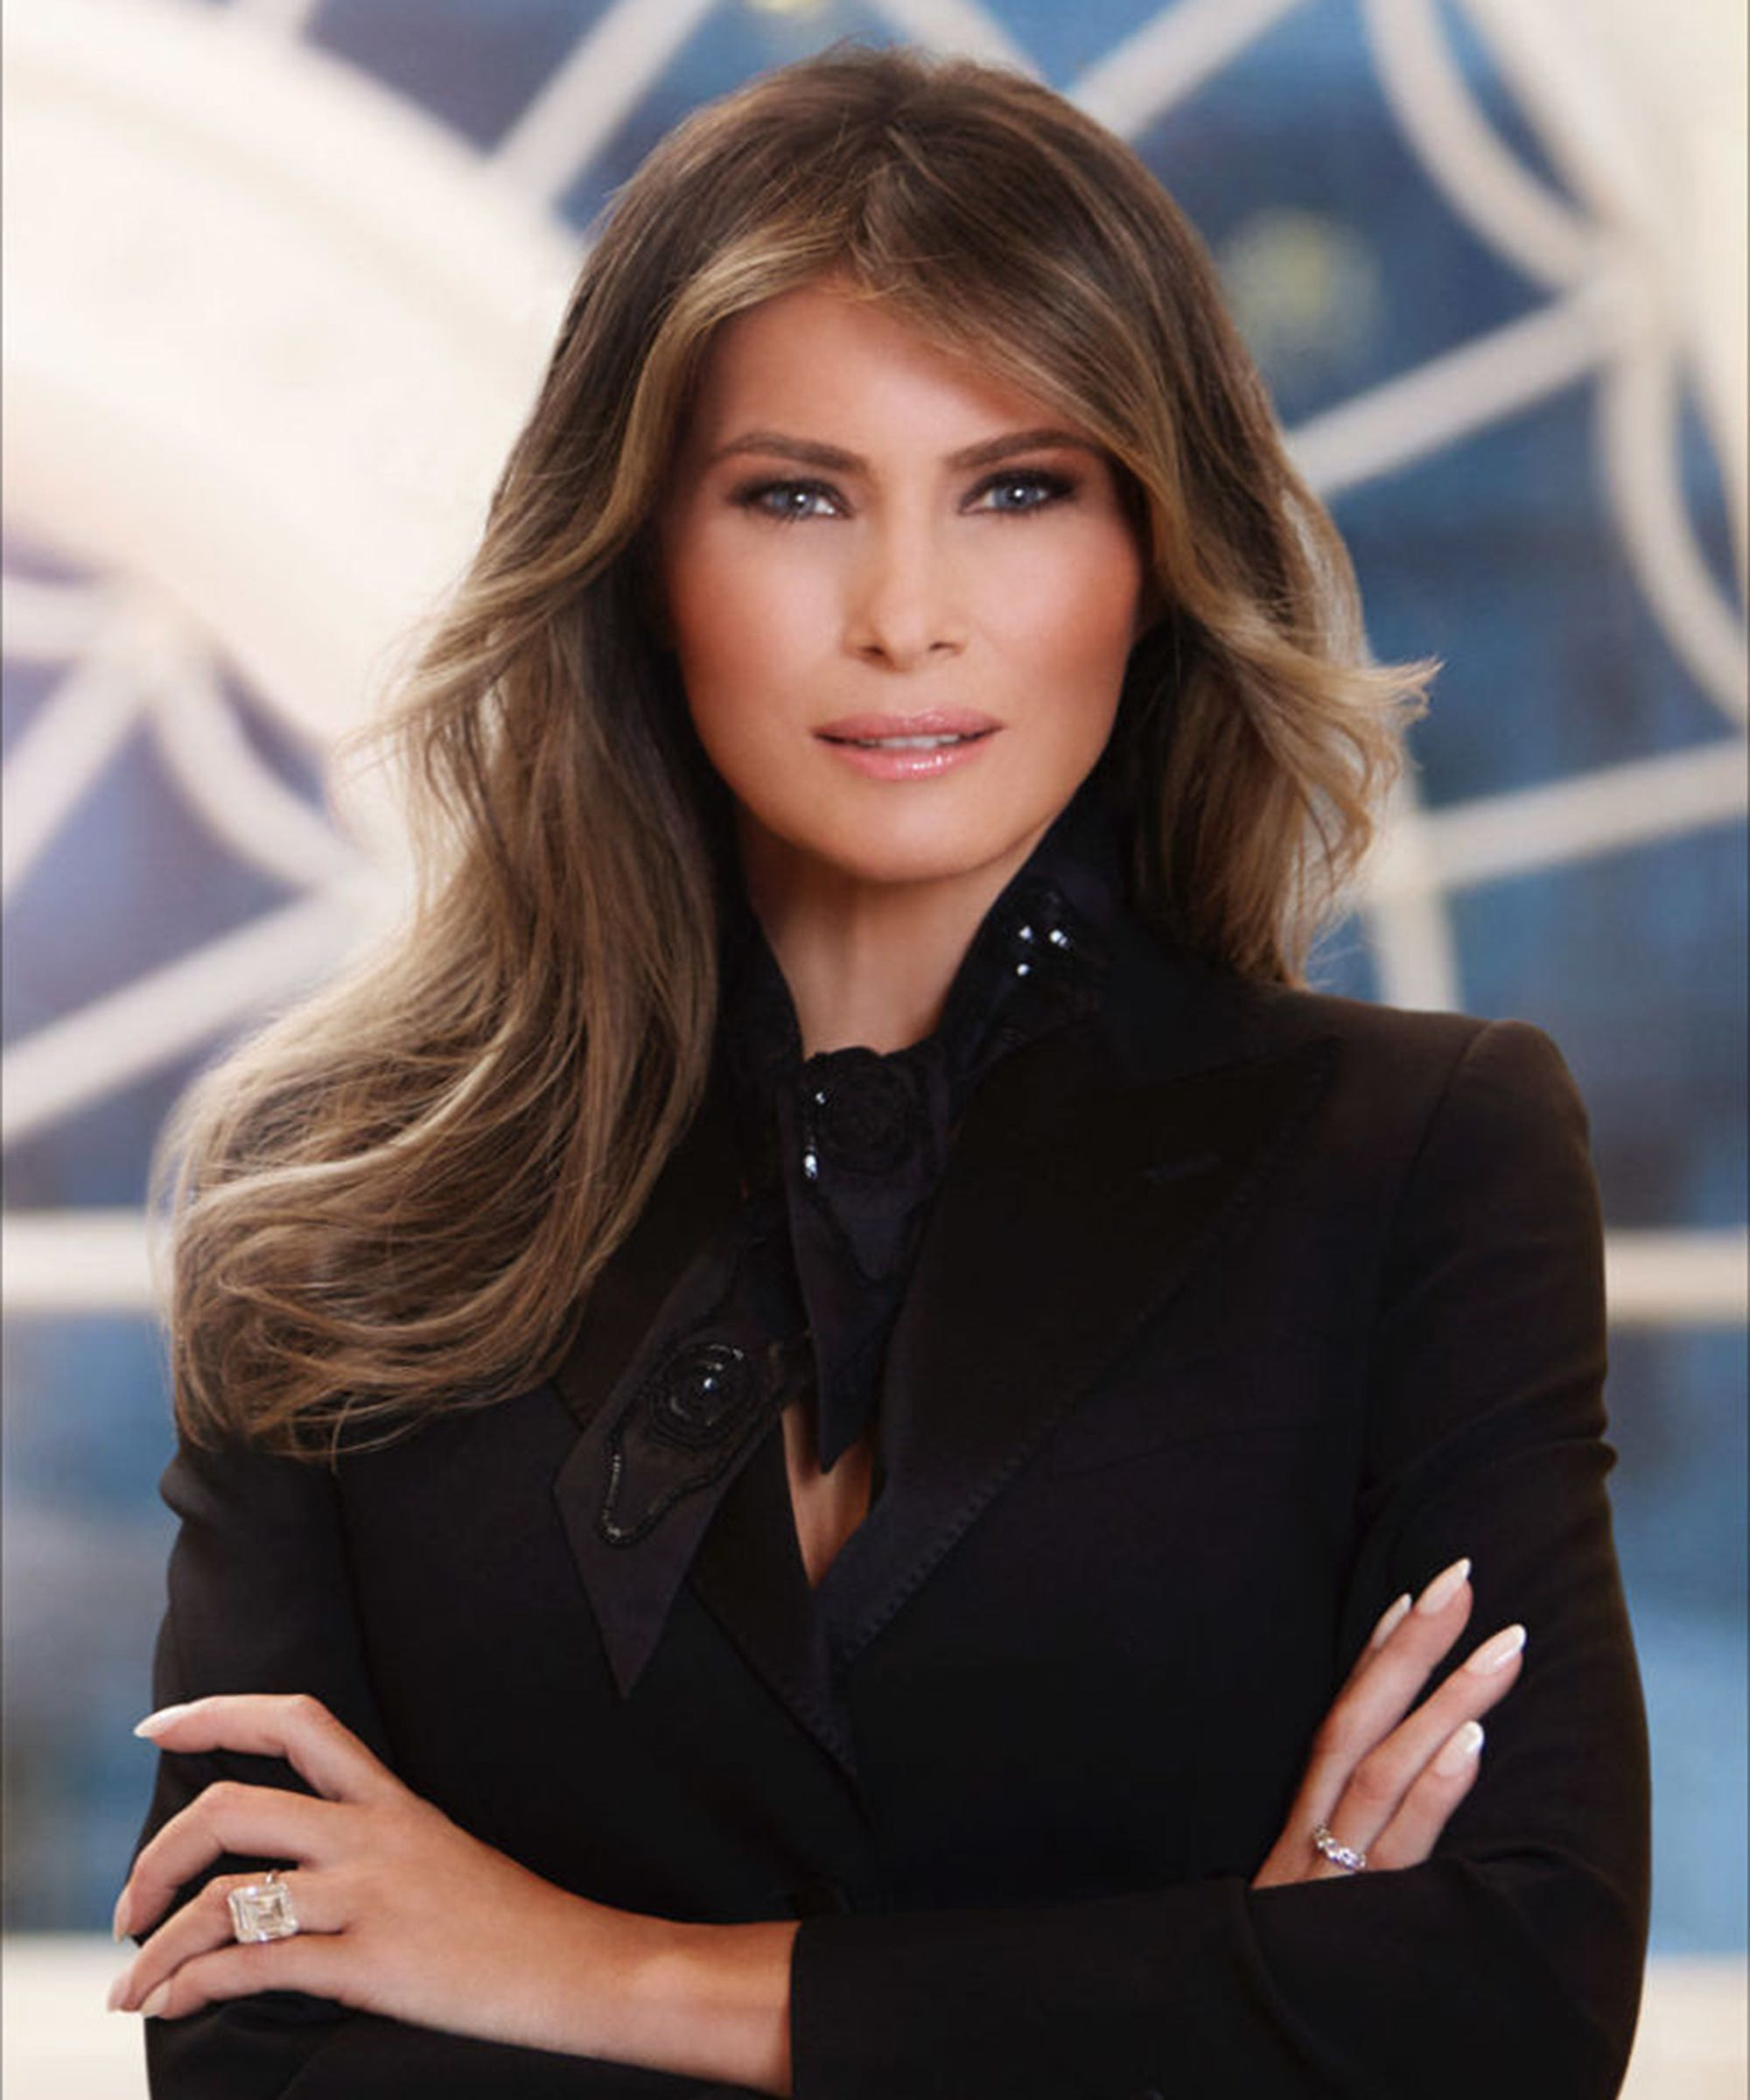 ... To See The Official White House Portrait Of First Lady Melania Trump